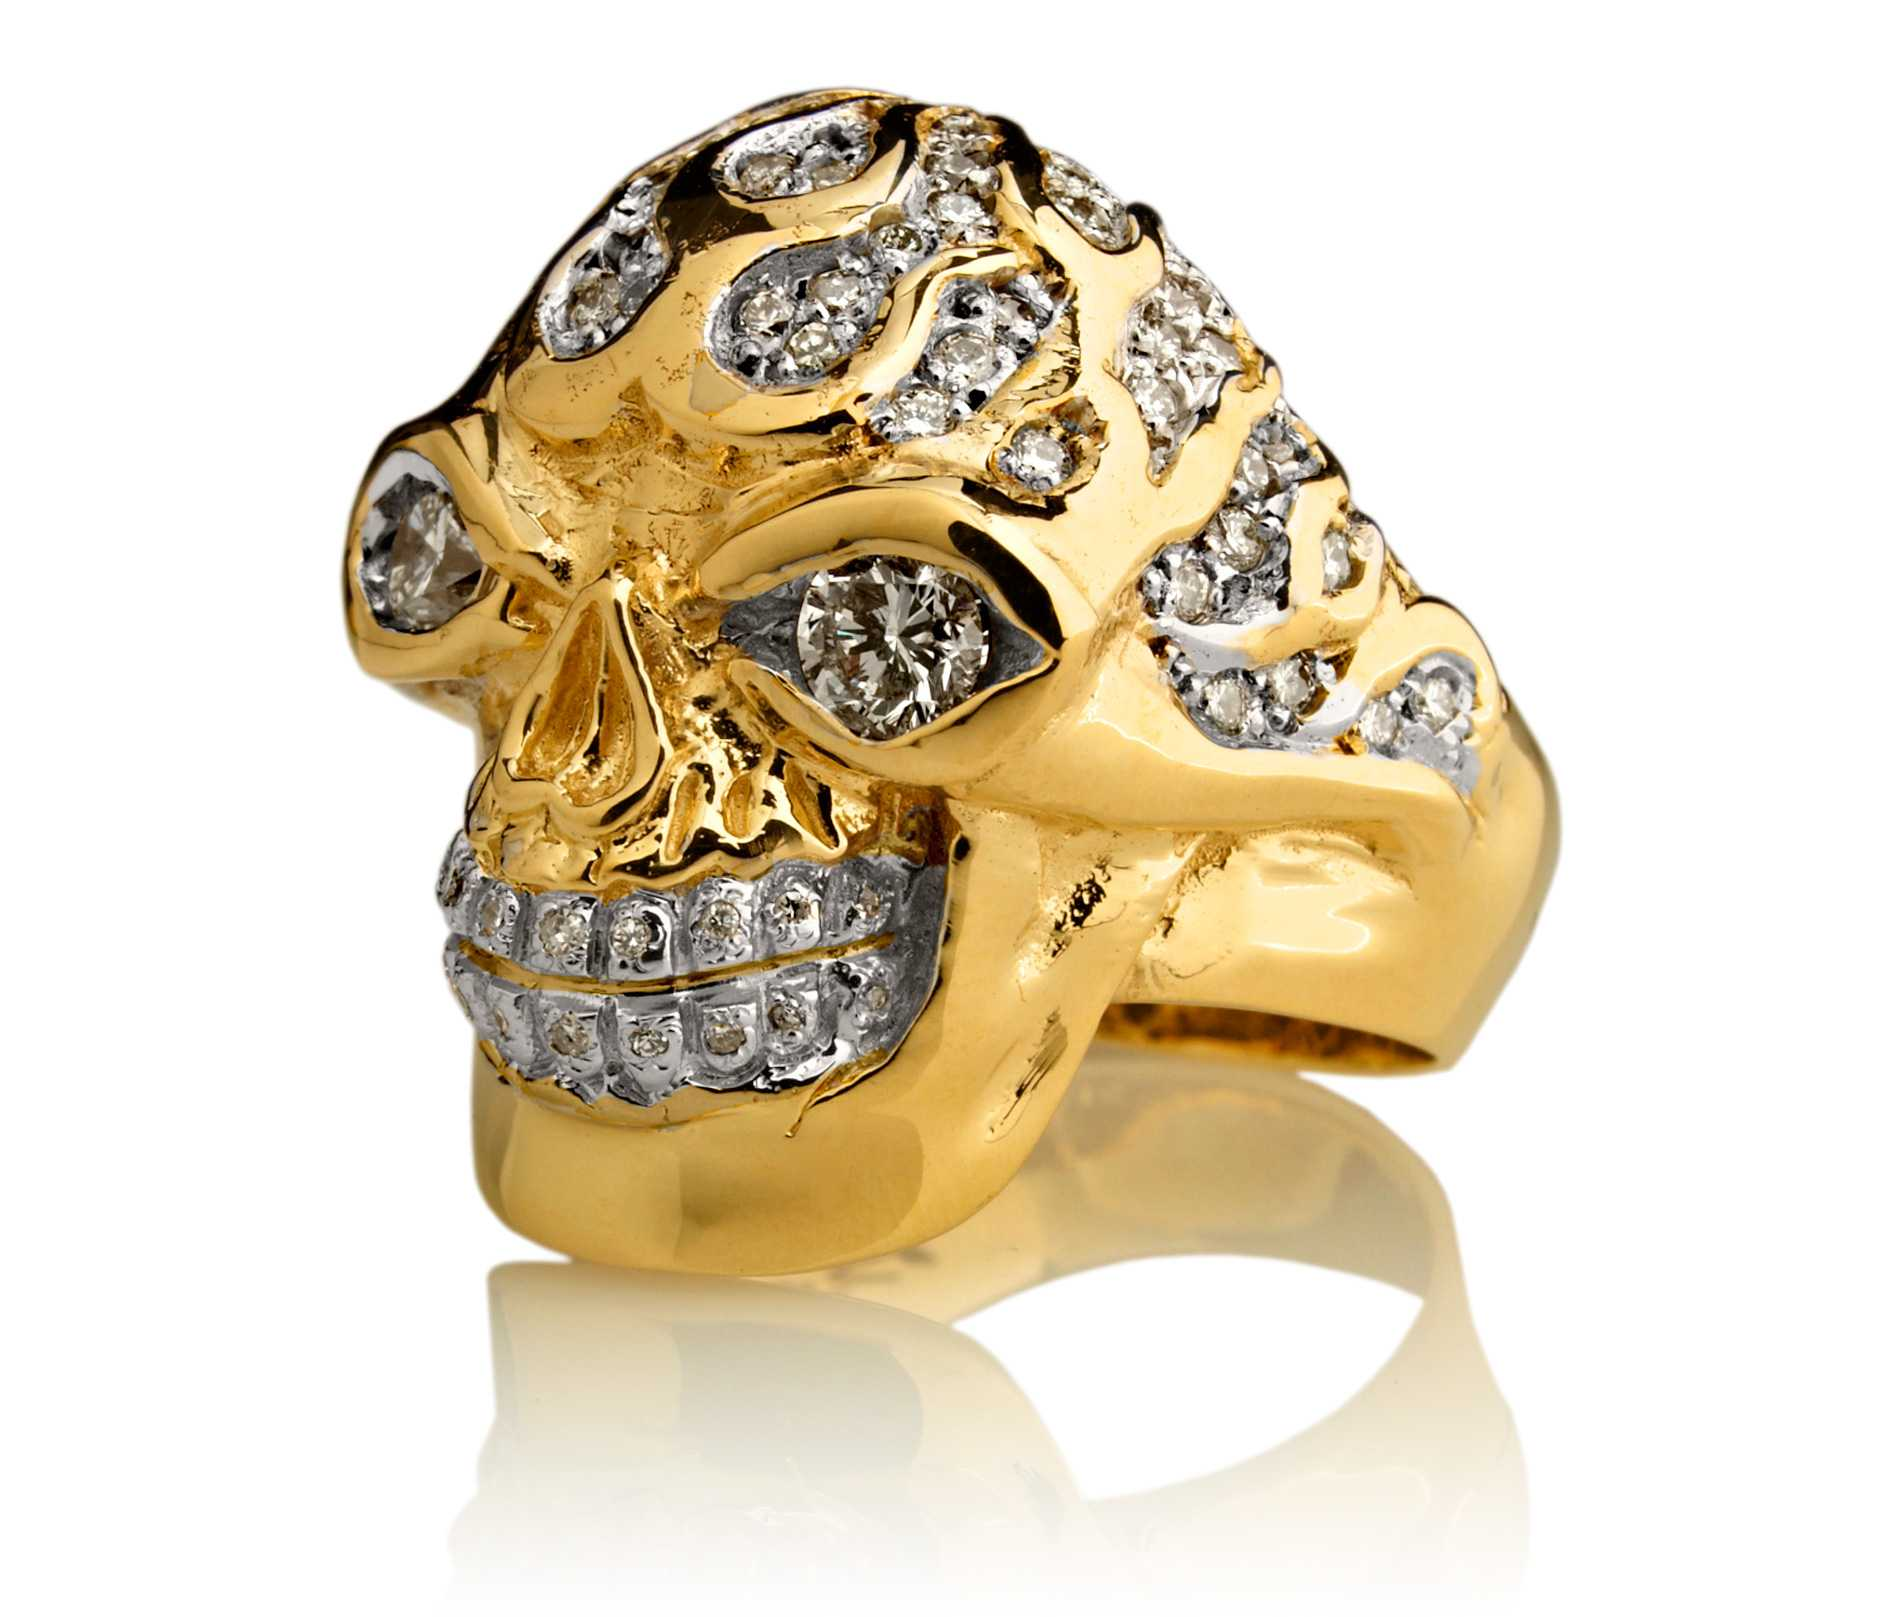 blazing bruno skull ring in yellow gold with white